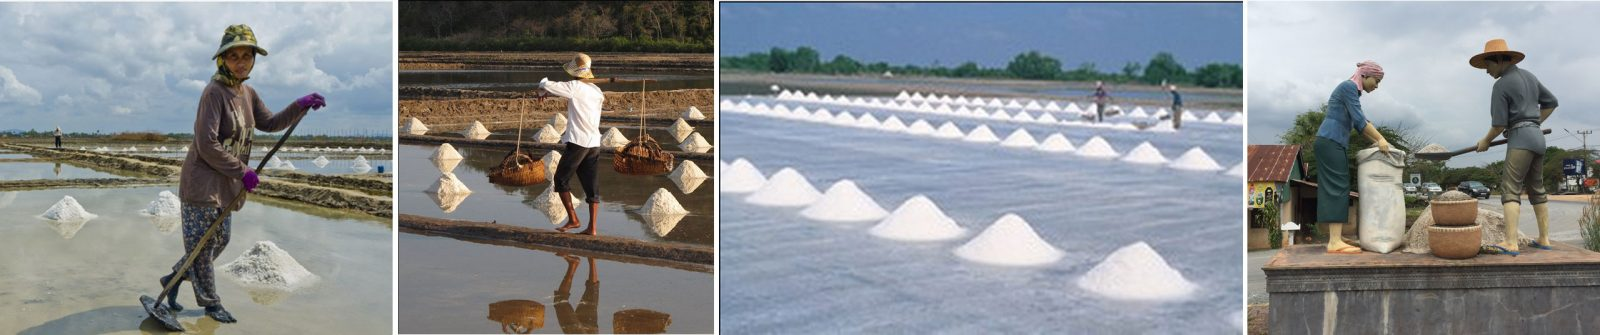 Kampot Salt Production